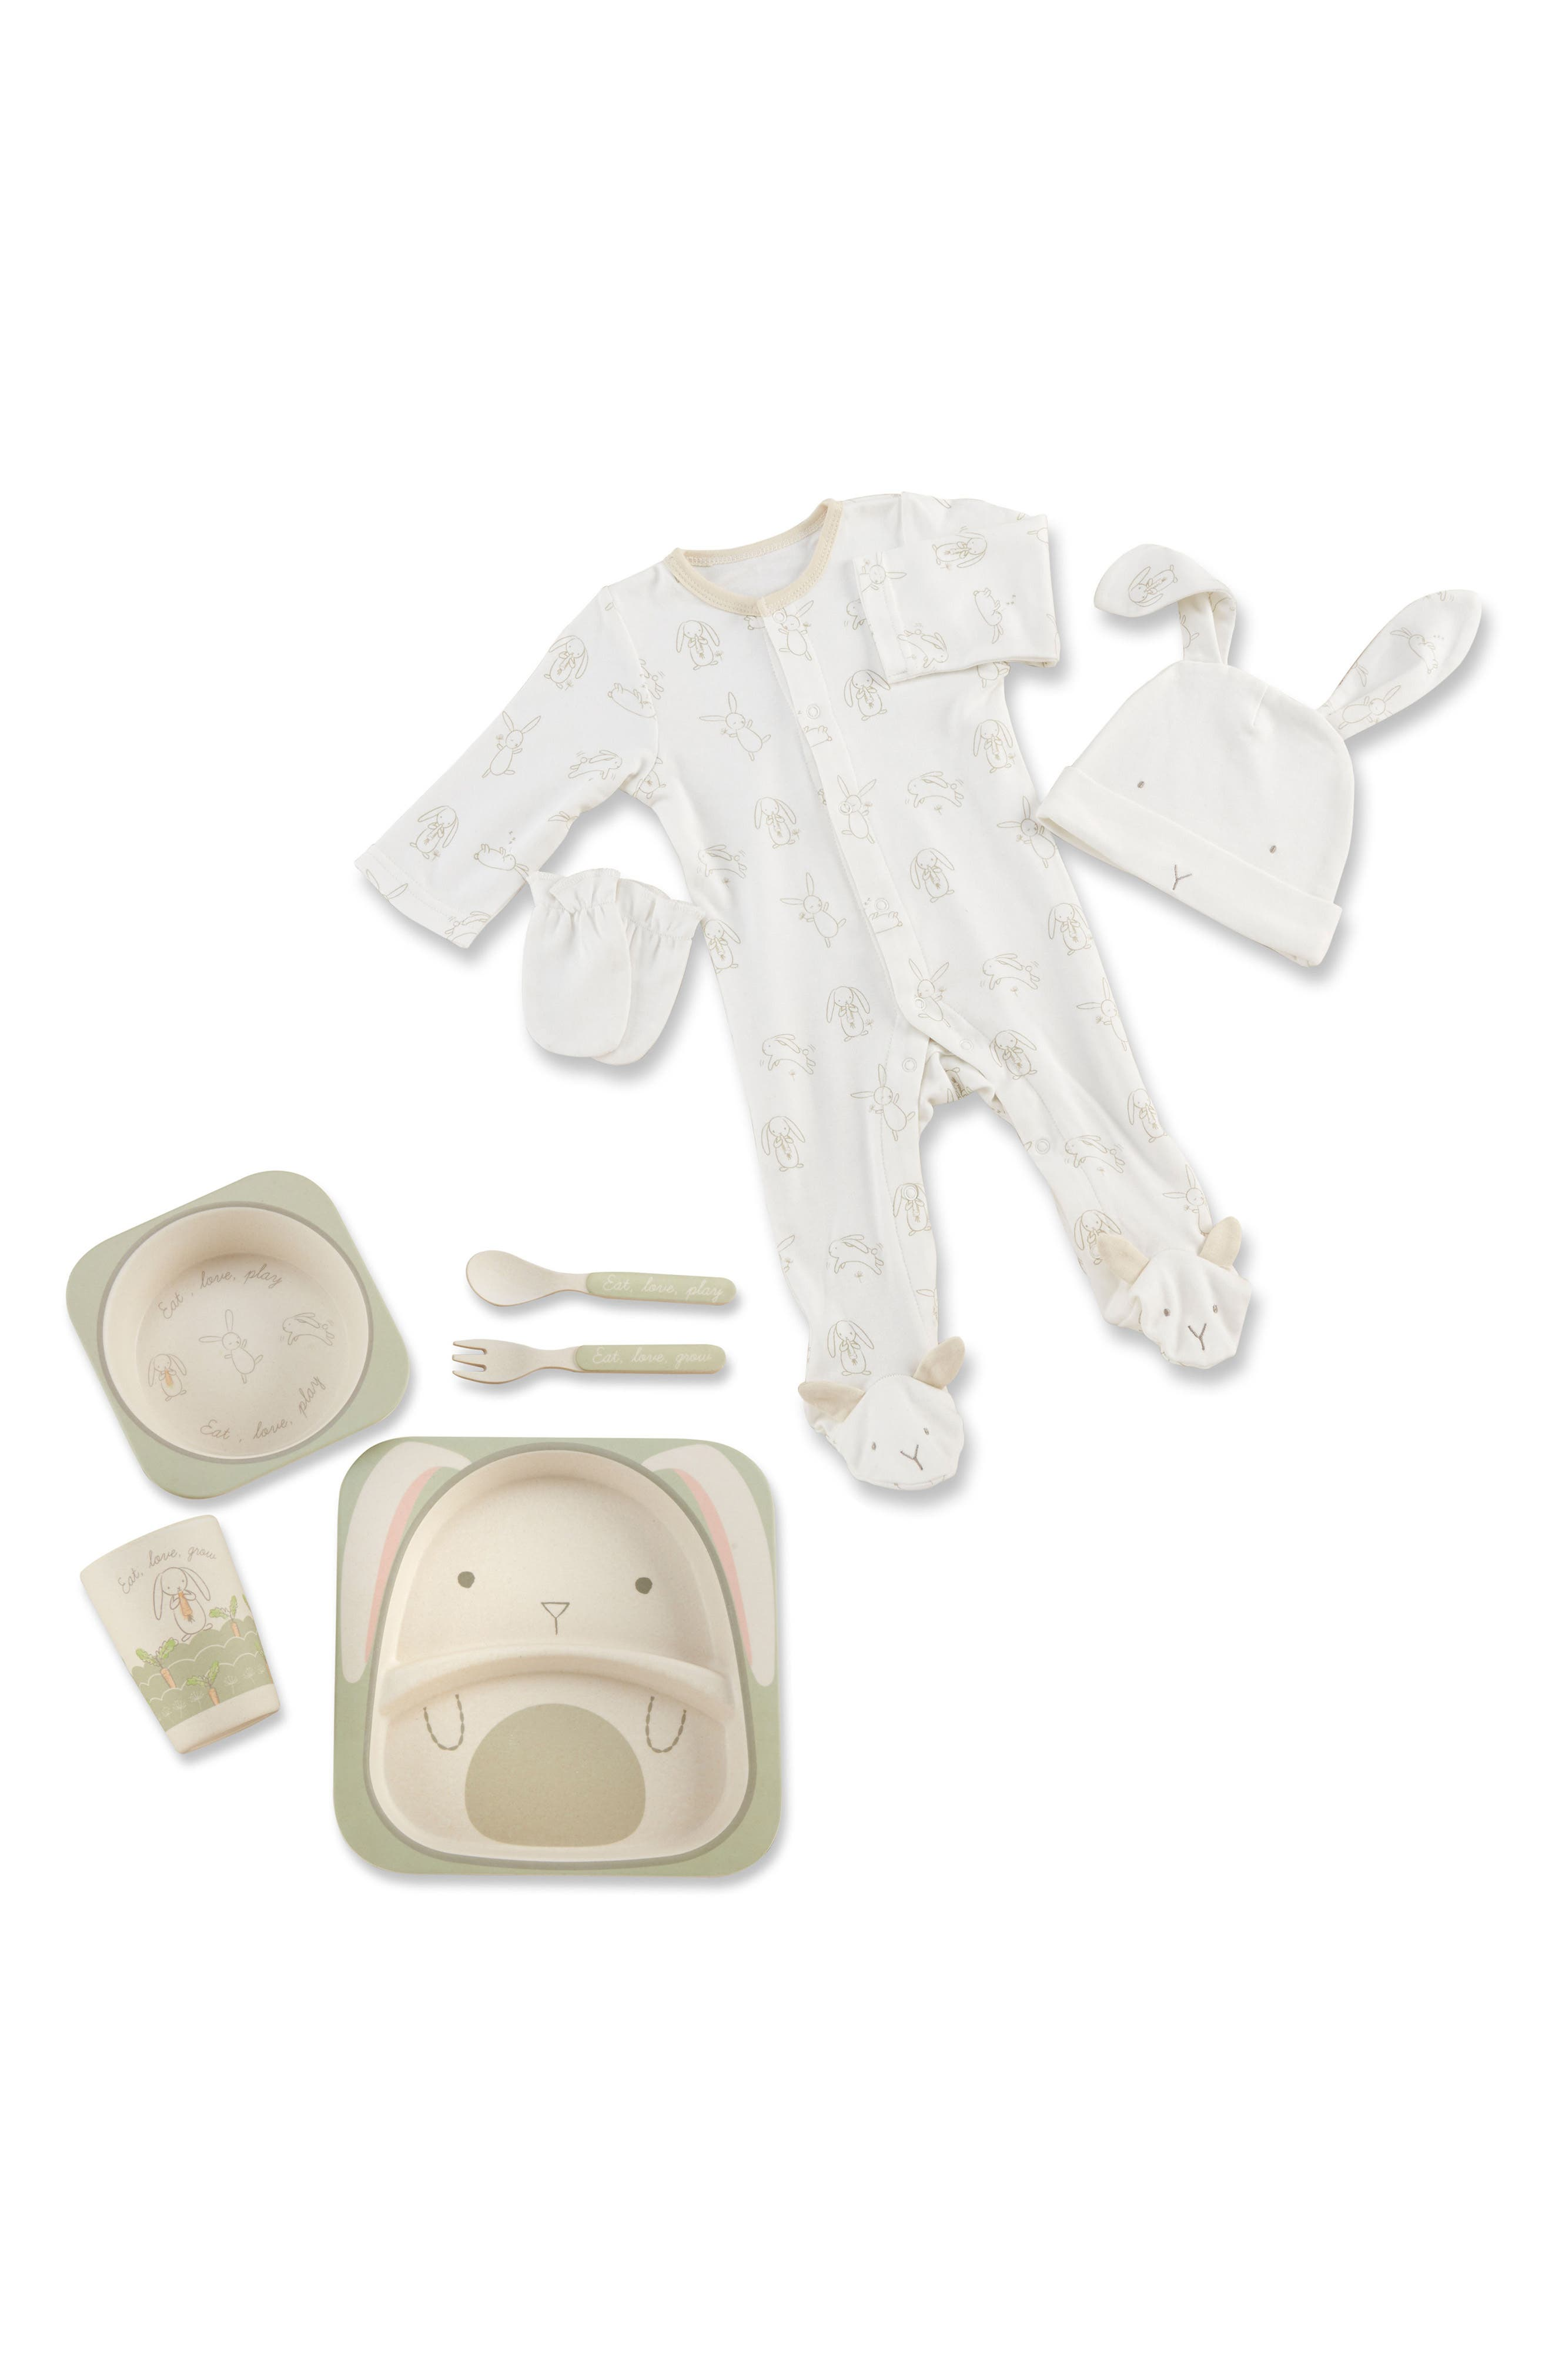 Natural Baby One-Piece Pajamas, Hat, Mittens & 5-Piece Feeding Set,                             Main thumbnail 1, color,                             280